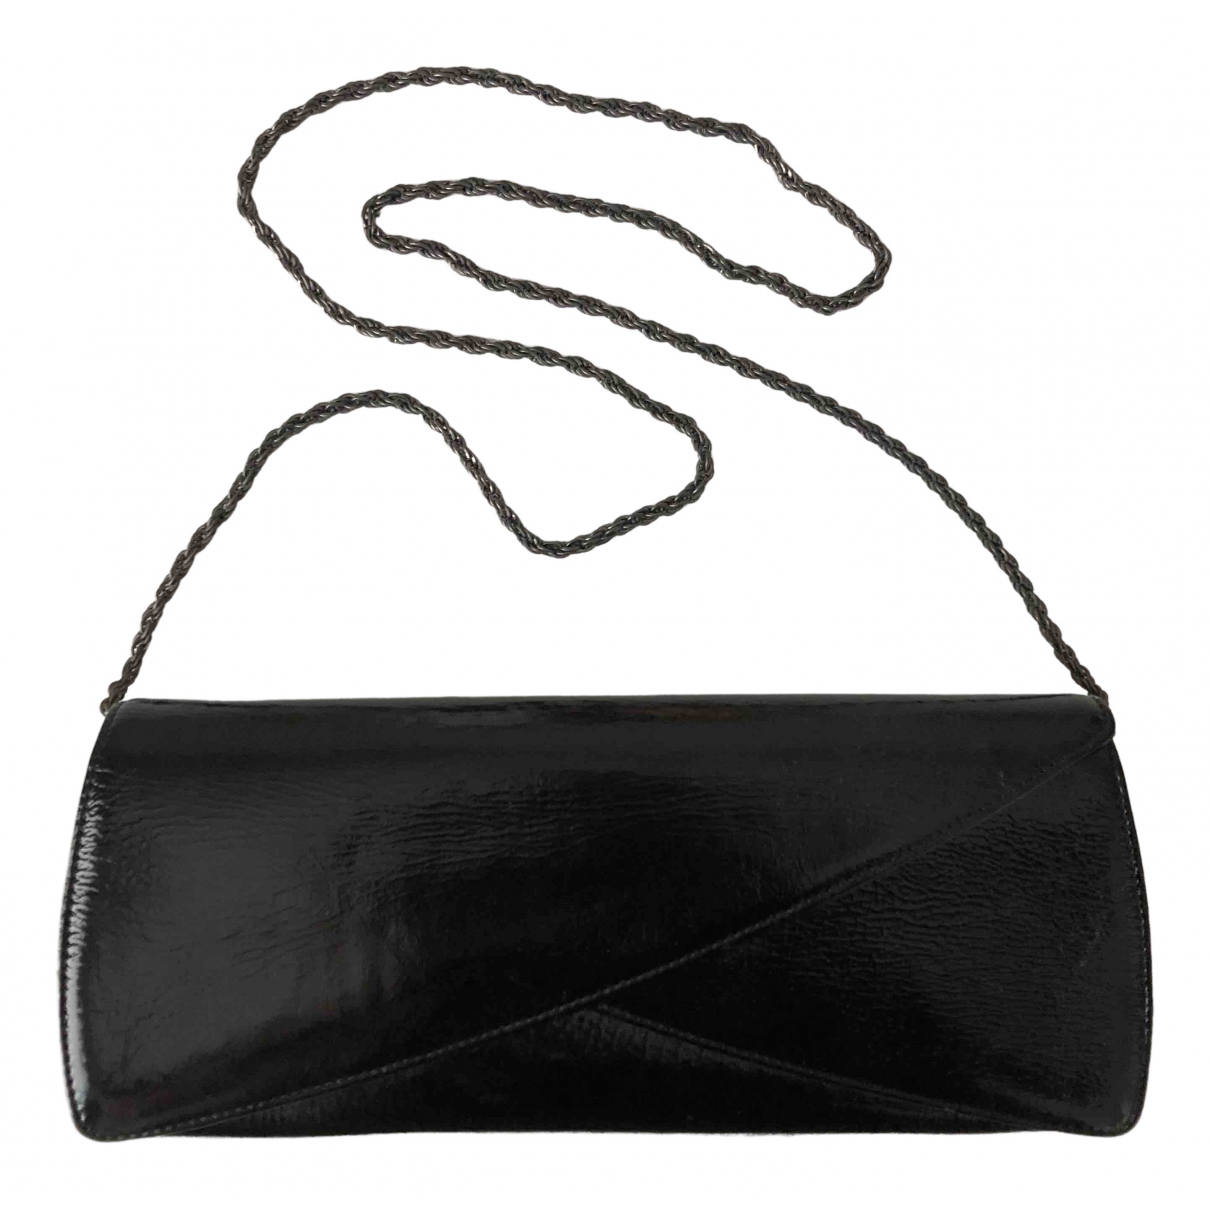 Rodo \N Black Patent leather Clutch bag for Women \N